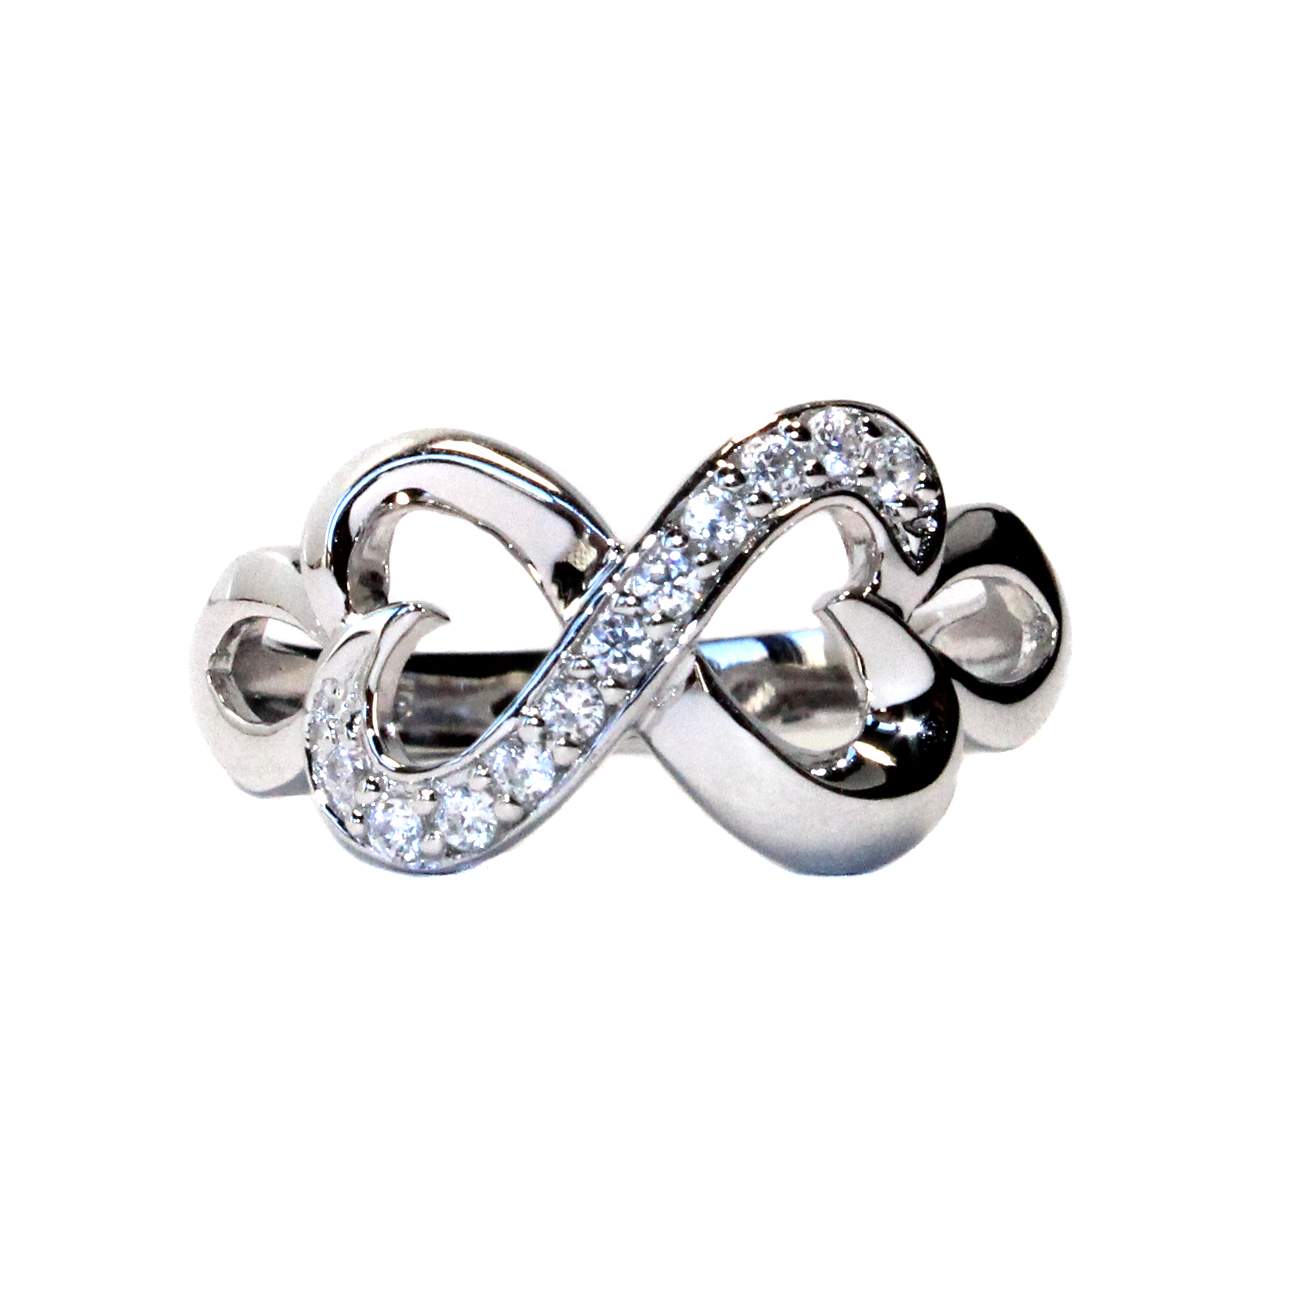 the gallery for gt infinity promise rings for girlfriend